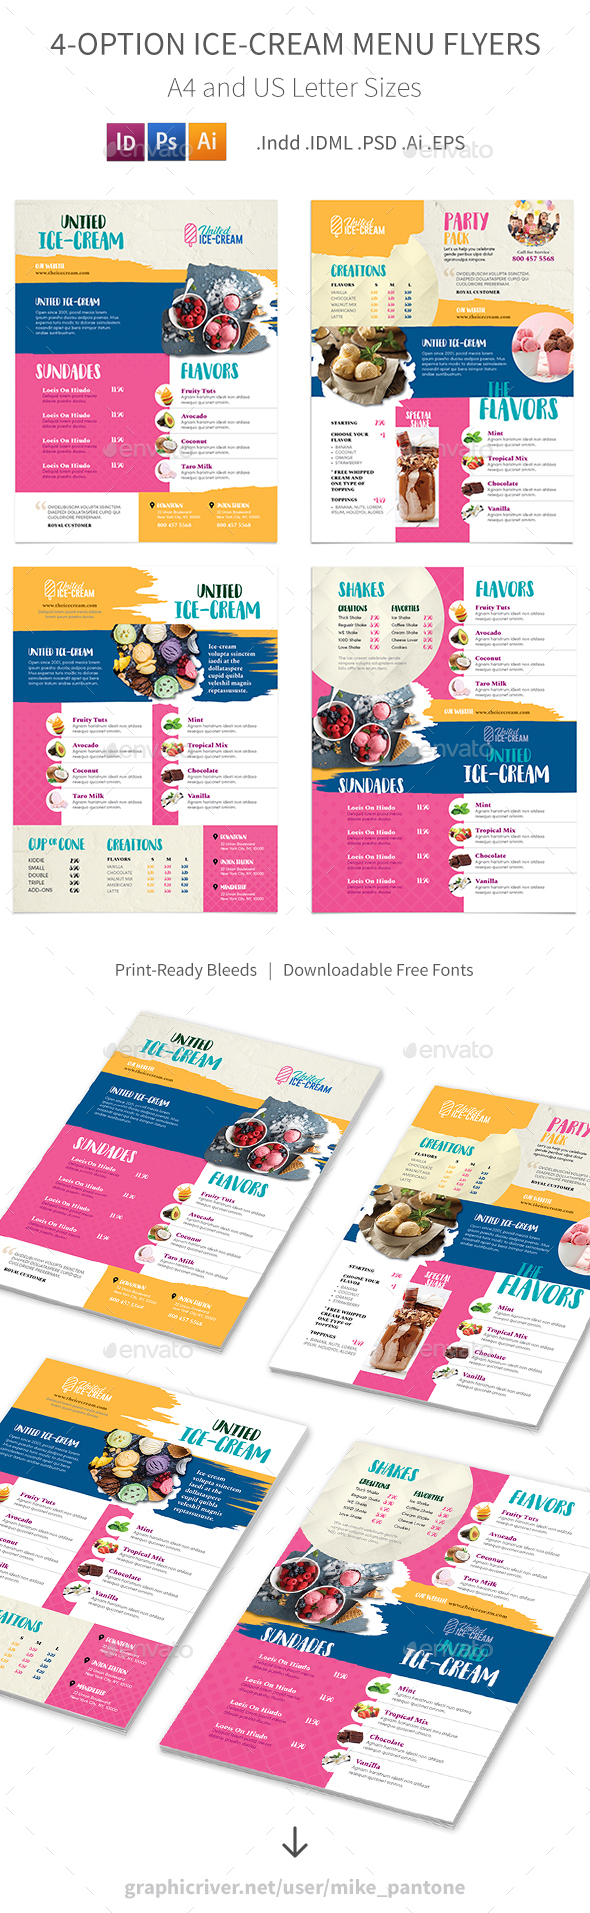 Ice-cream Restaurant Menu Flyers 3 – 4 Options - Food Menus Print Templates